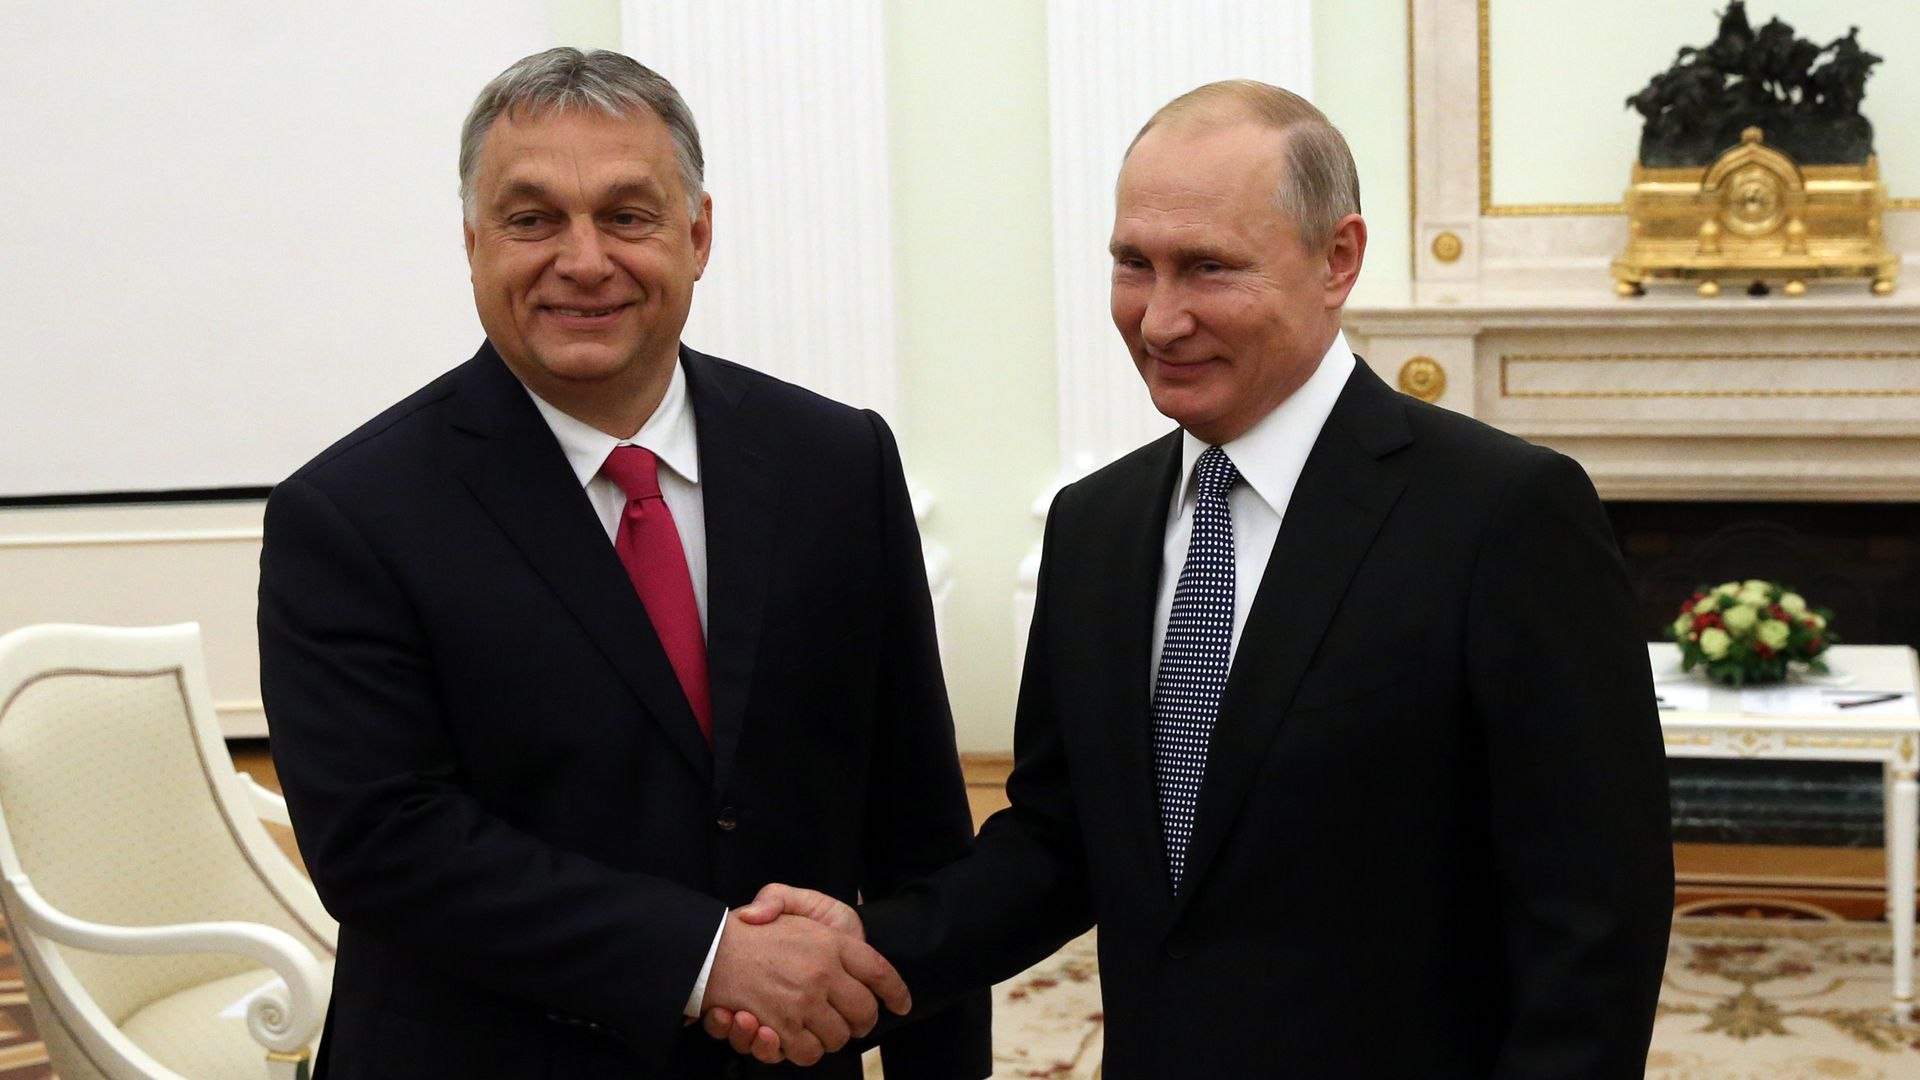 Hungarian President shaking hands with Russian President Putin